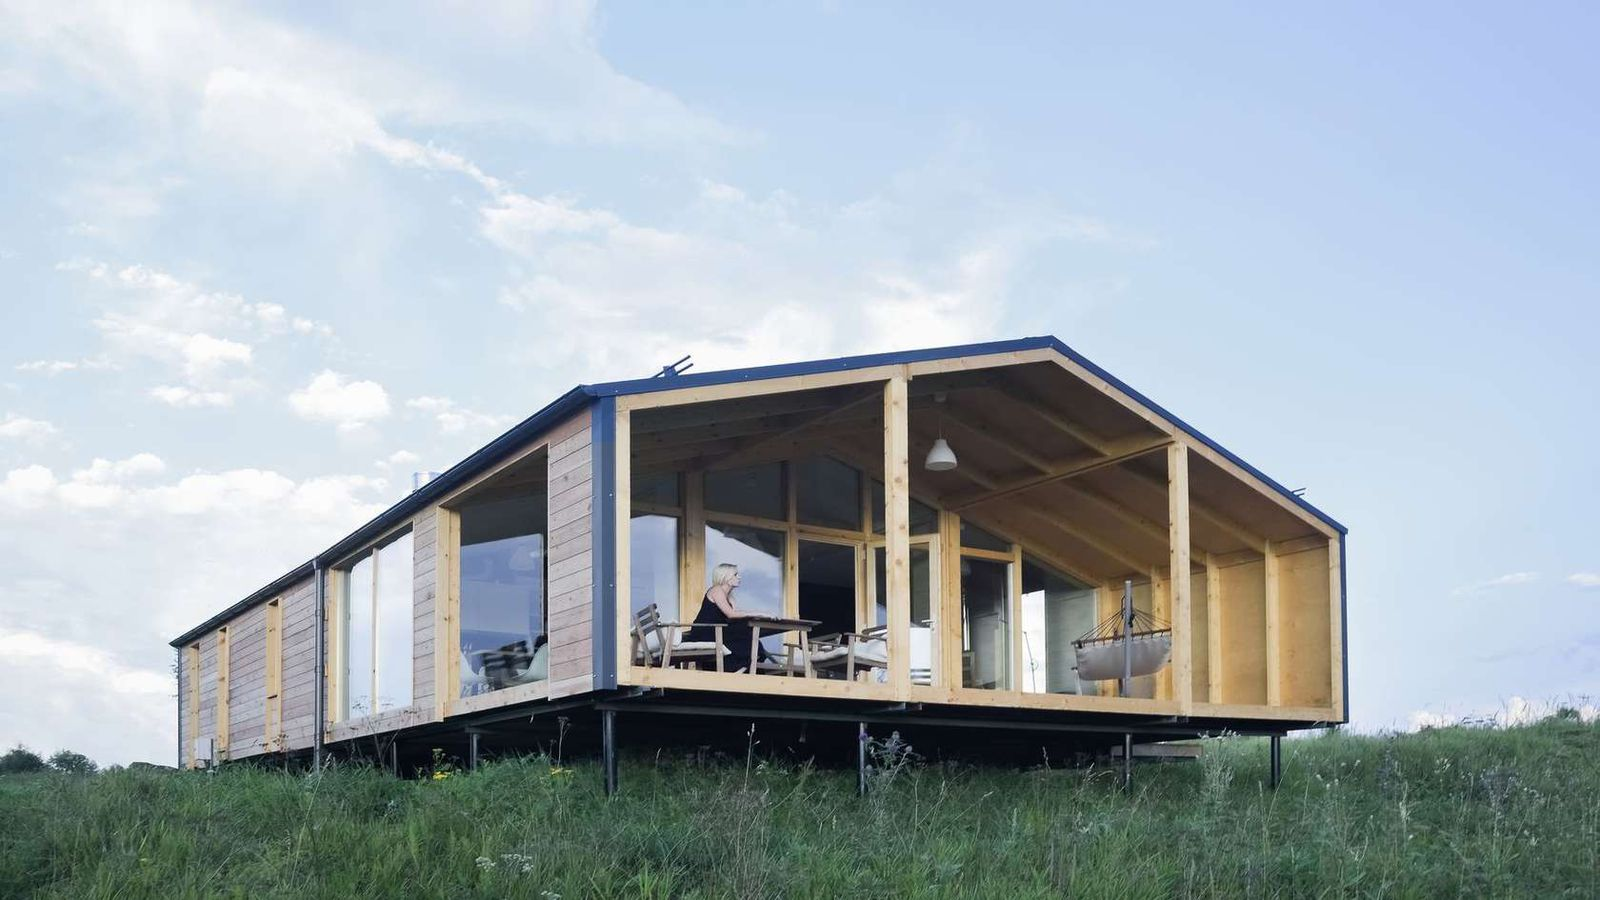 Affordable Prefab Cabin Dubldom Now Accepting U S Pre